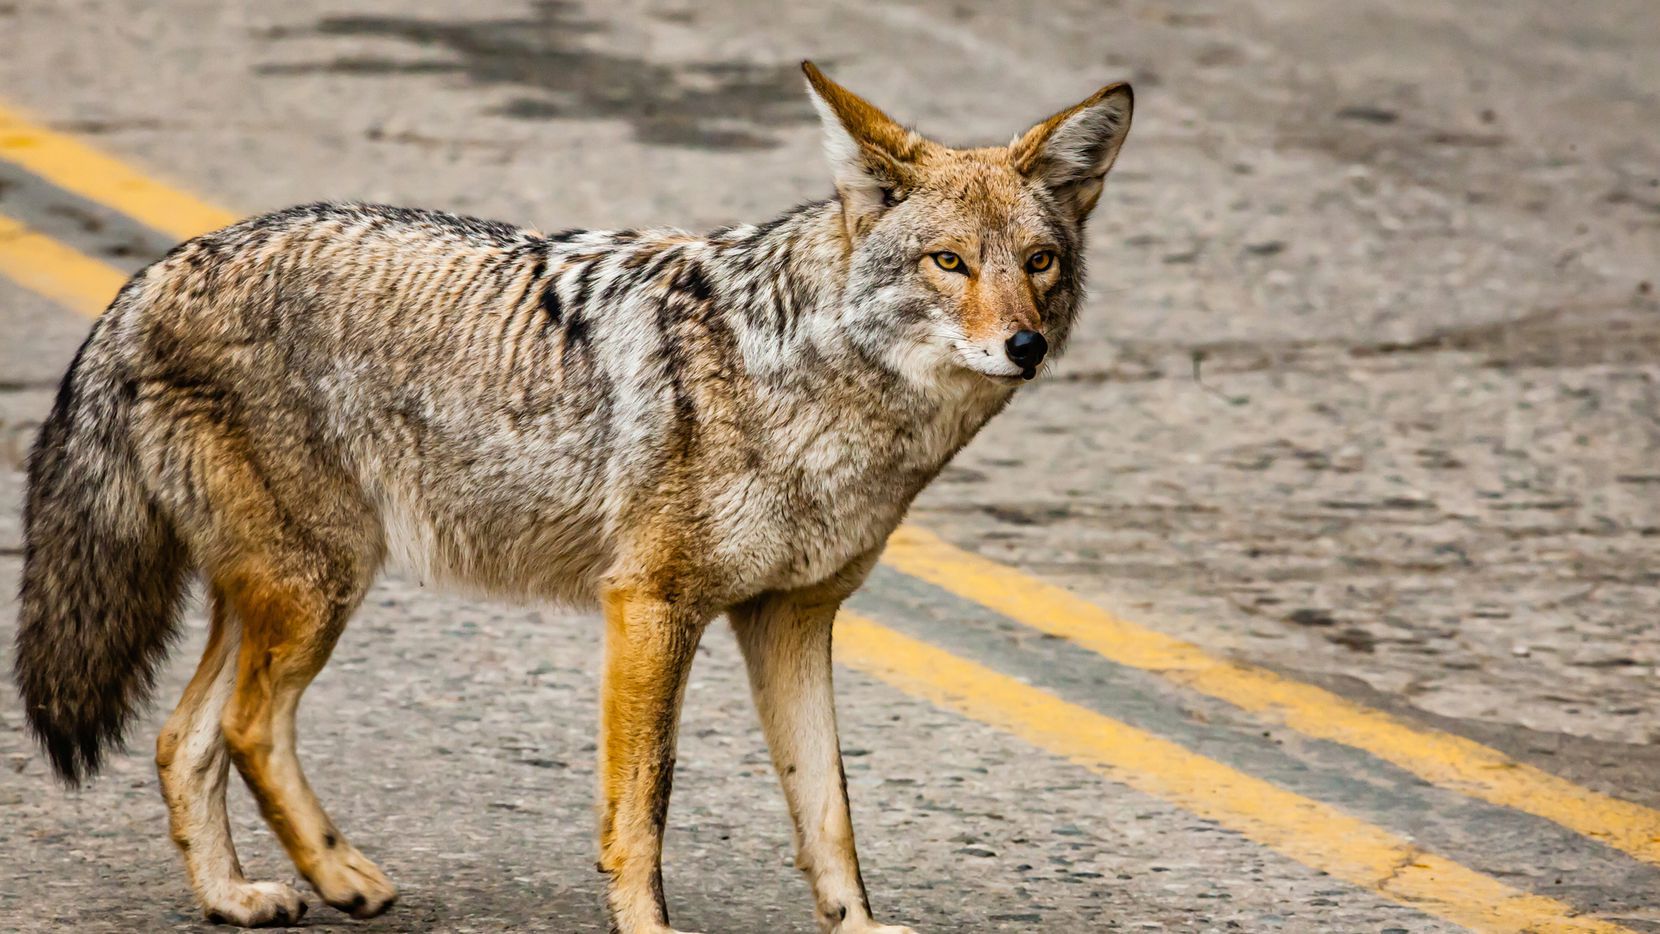 Coyote while crossing the street into Sequoia National Park